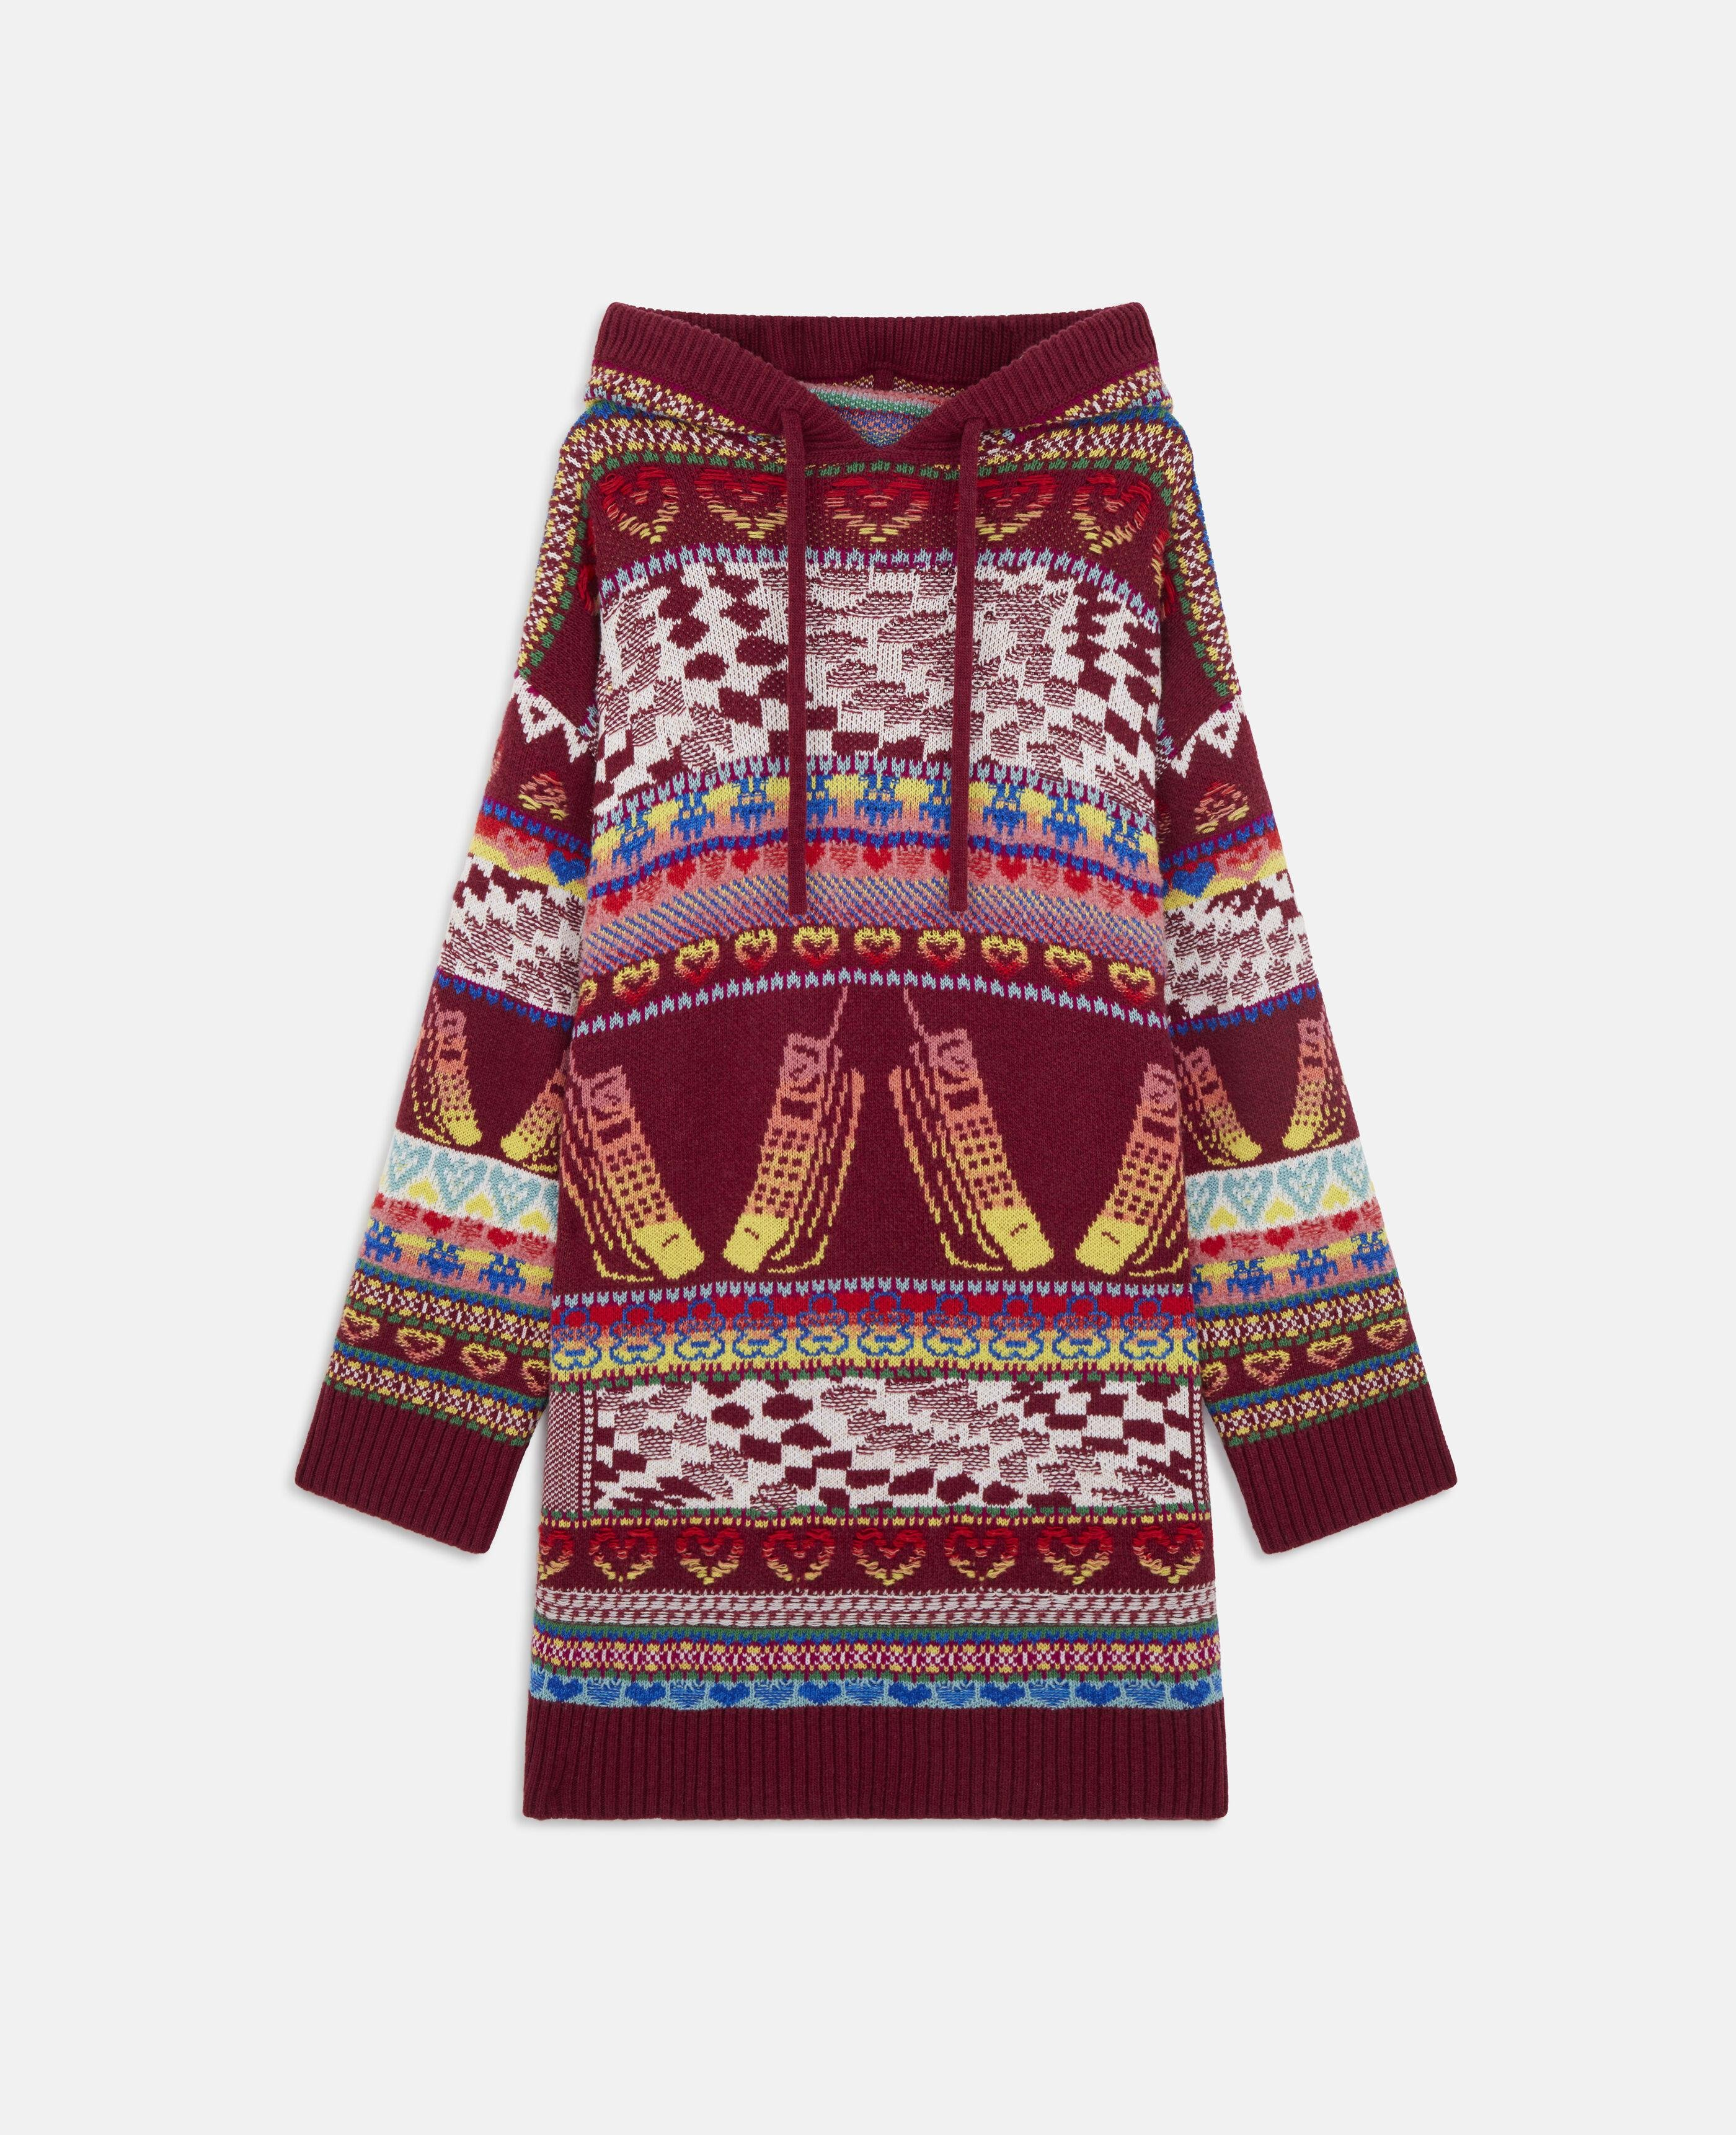 Keep In Touch' Hooded Dress